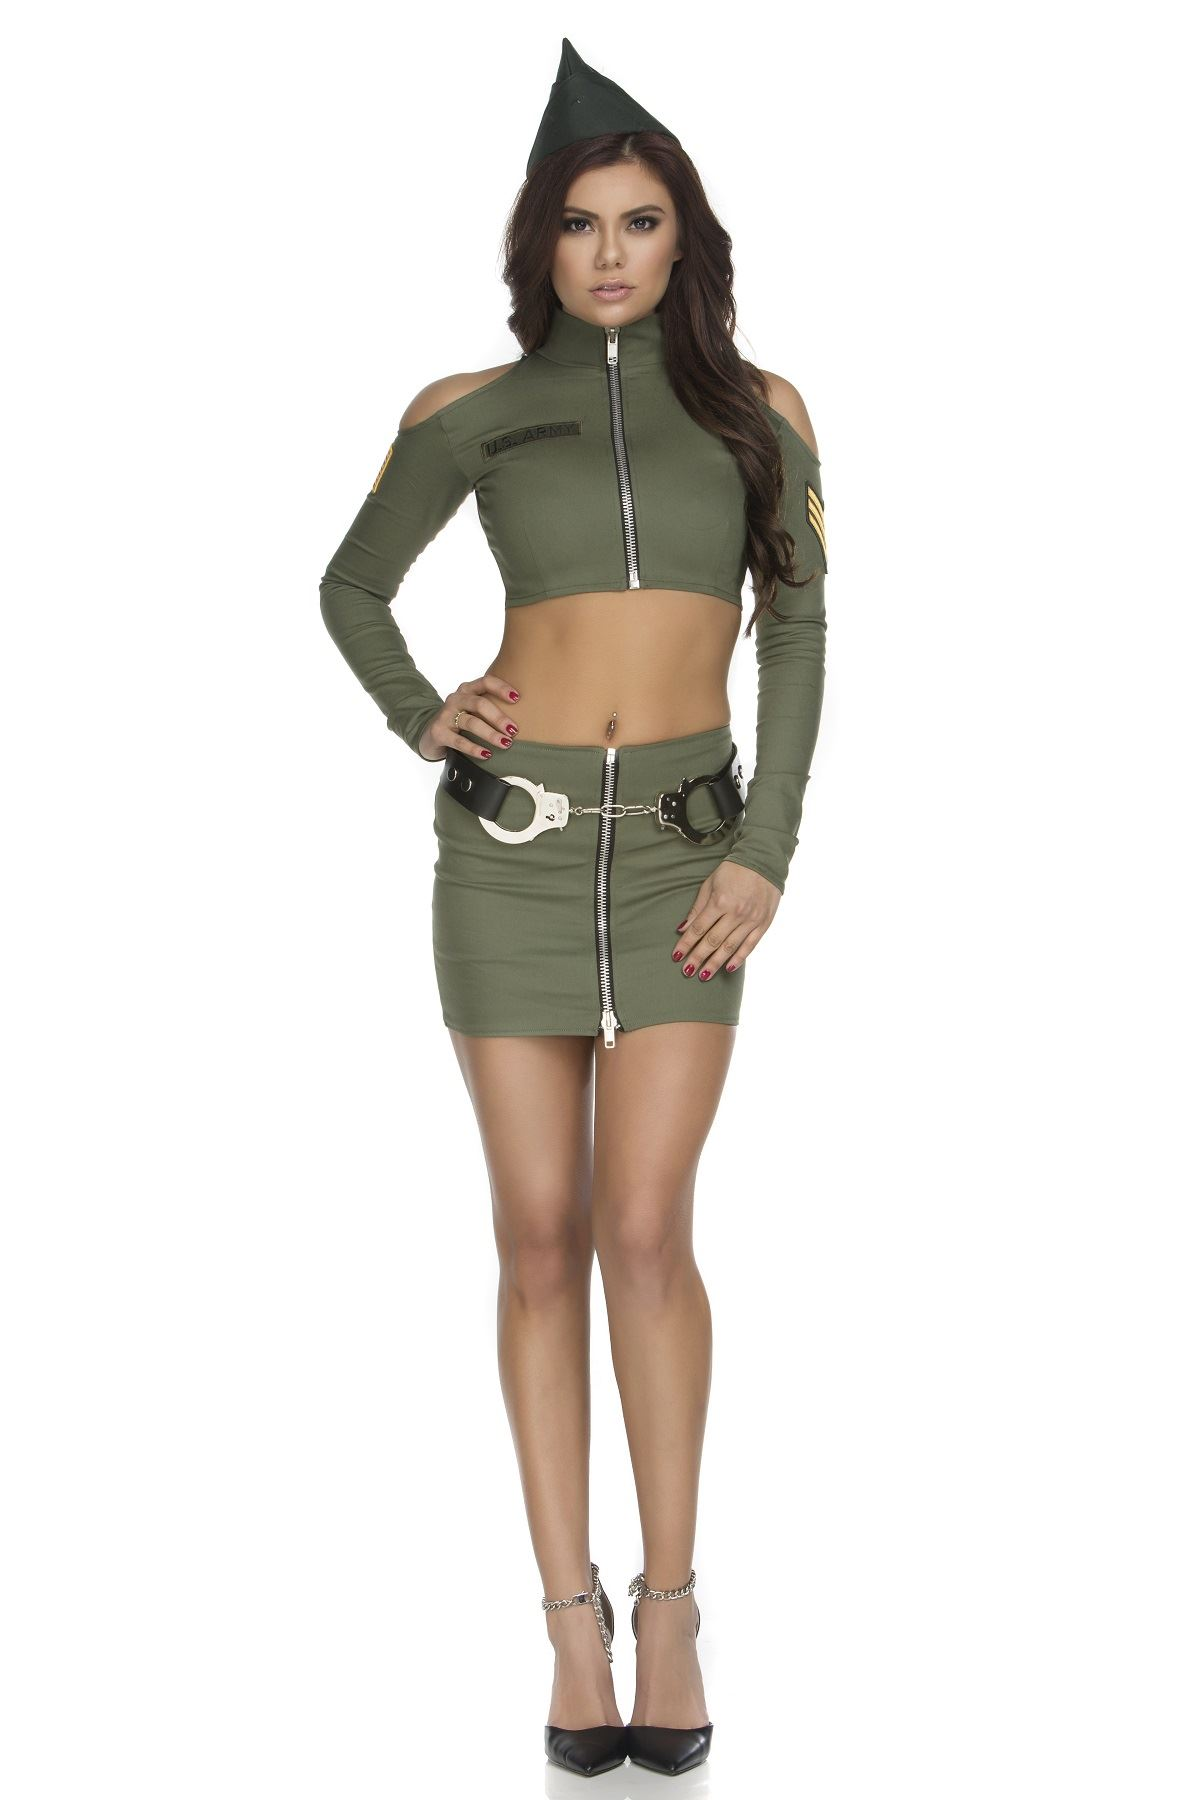 Adult Woman Army Soldier Costume ...  sc 1 st  The Costume Land & Adult Woman Army Soldier Costume | $60.99 | The Costume Land